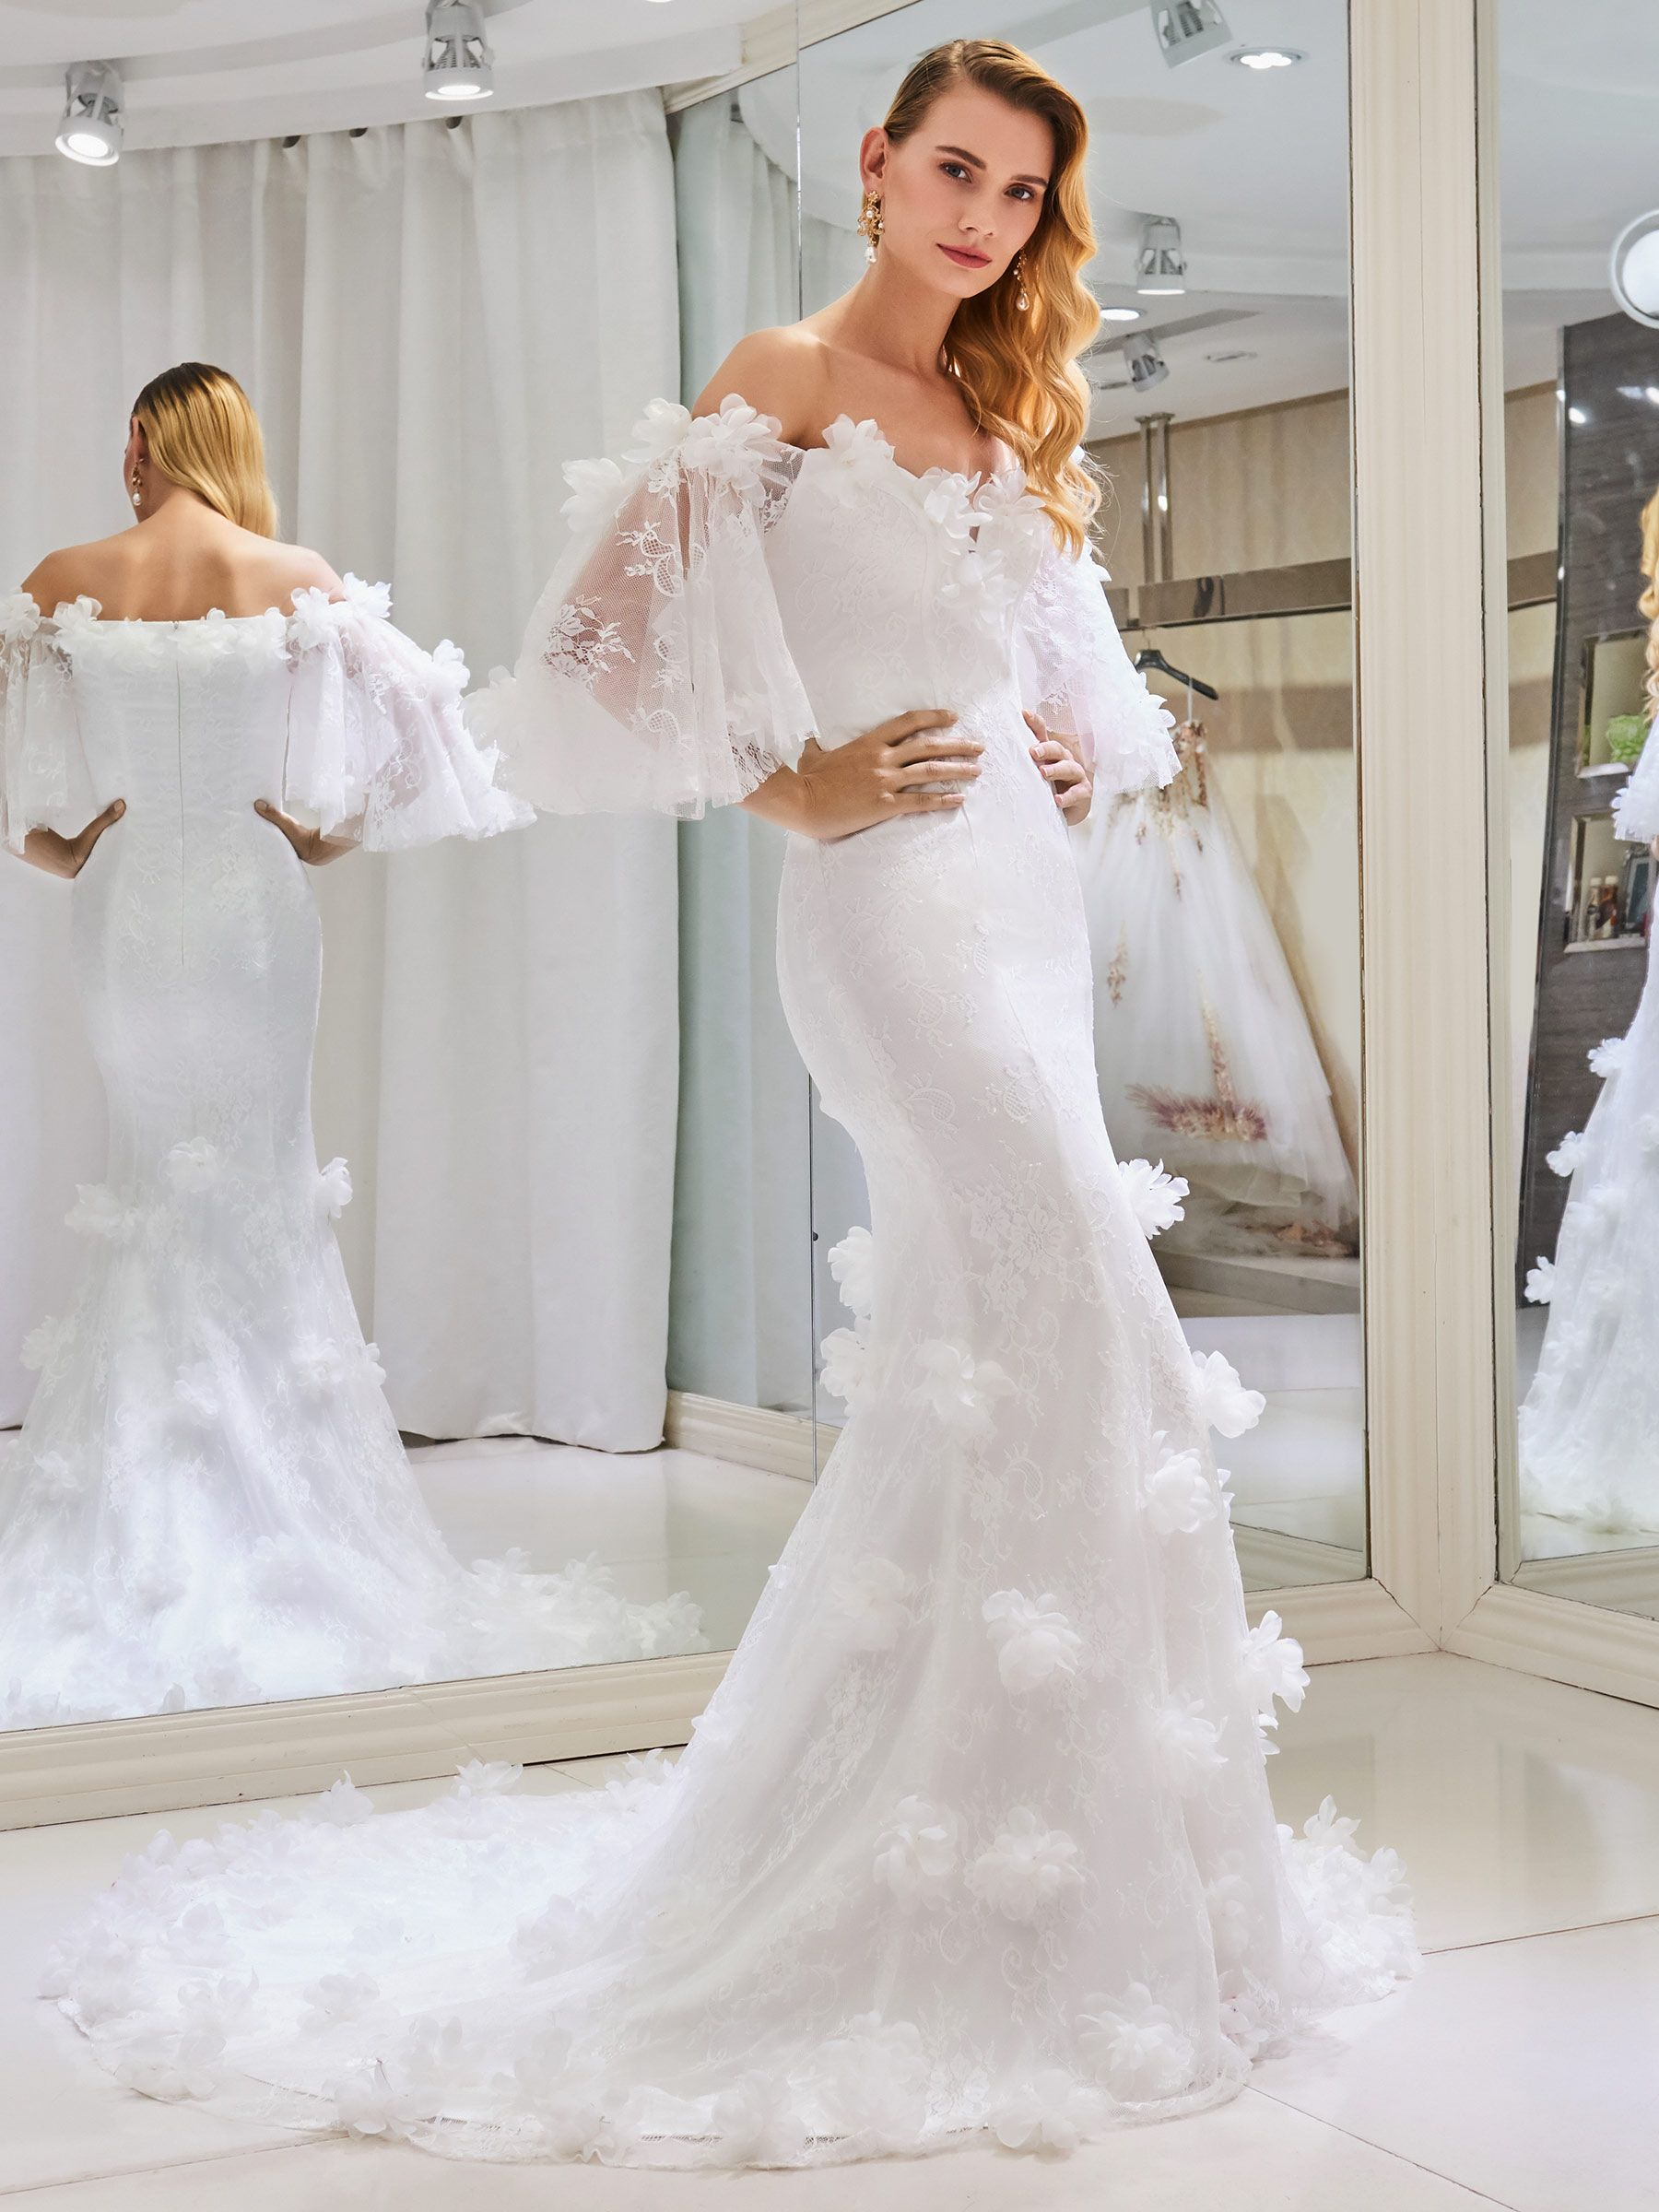 Off the shoulder d floral lace wedding dress with sleeve getting